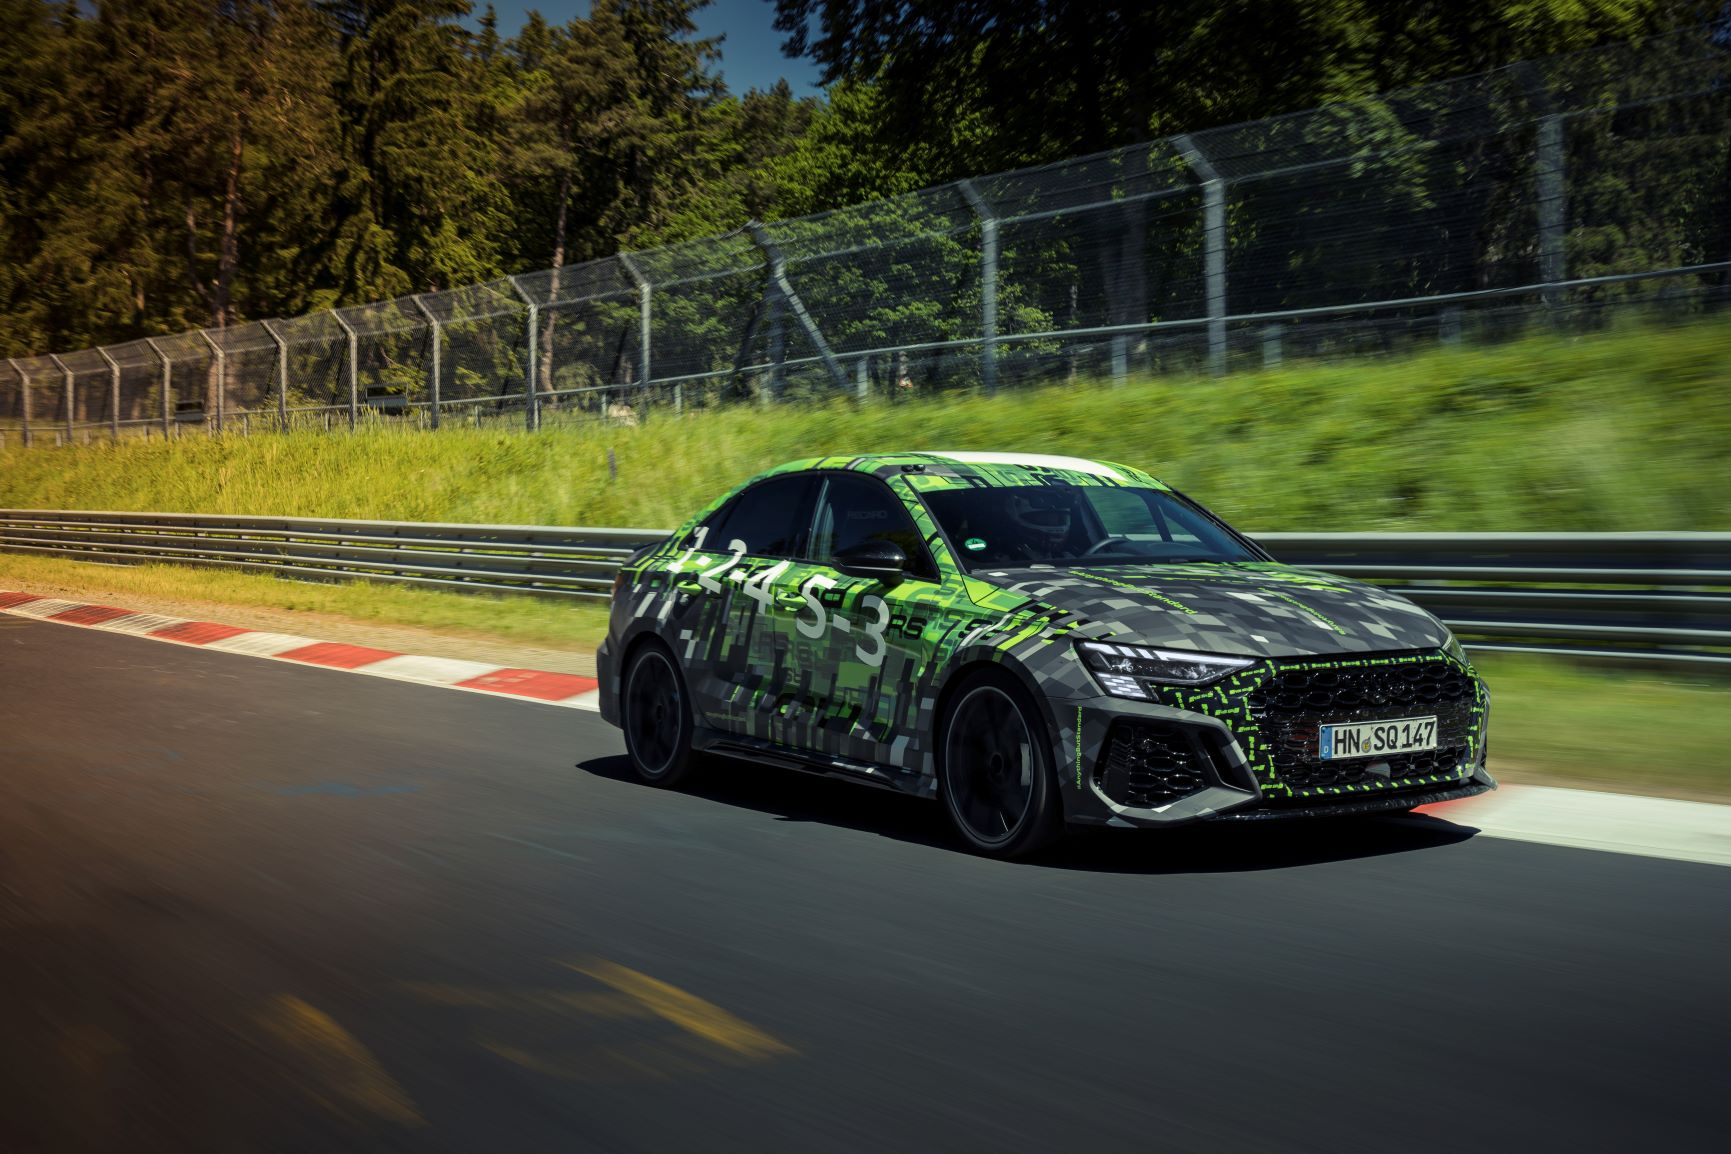 Pirelli P Zero Trofeo R: Record Performance With The New Audi Rs 3 At The Epic Nurburgring